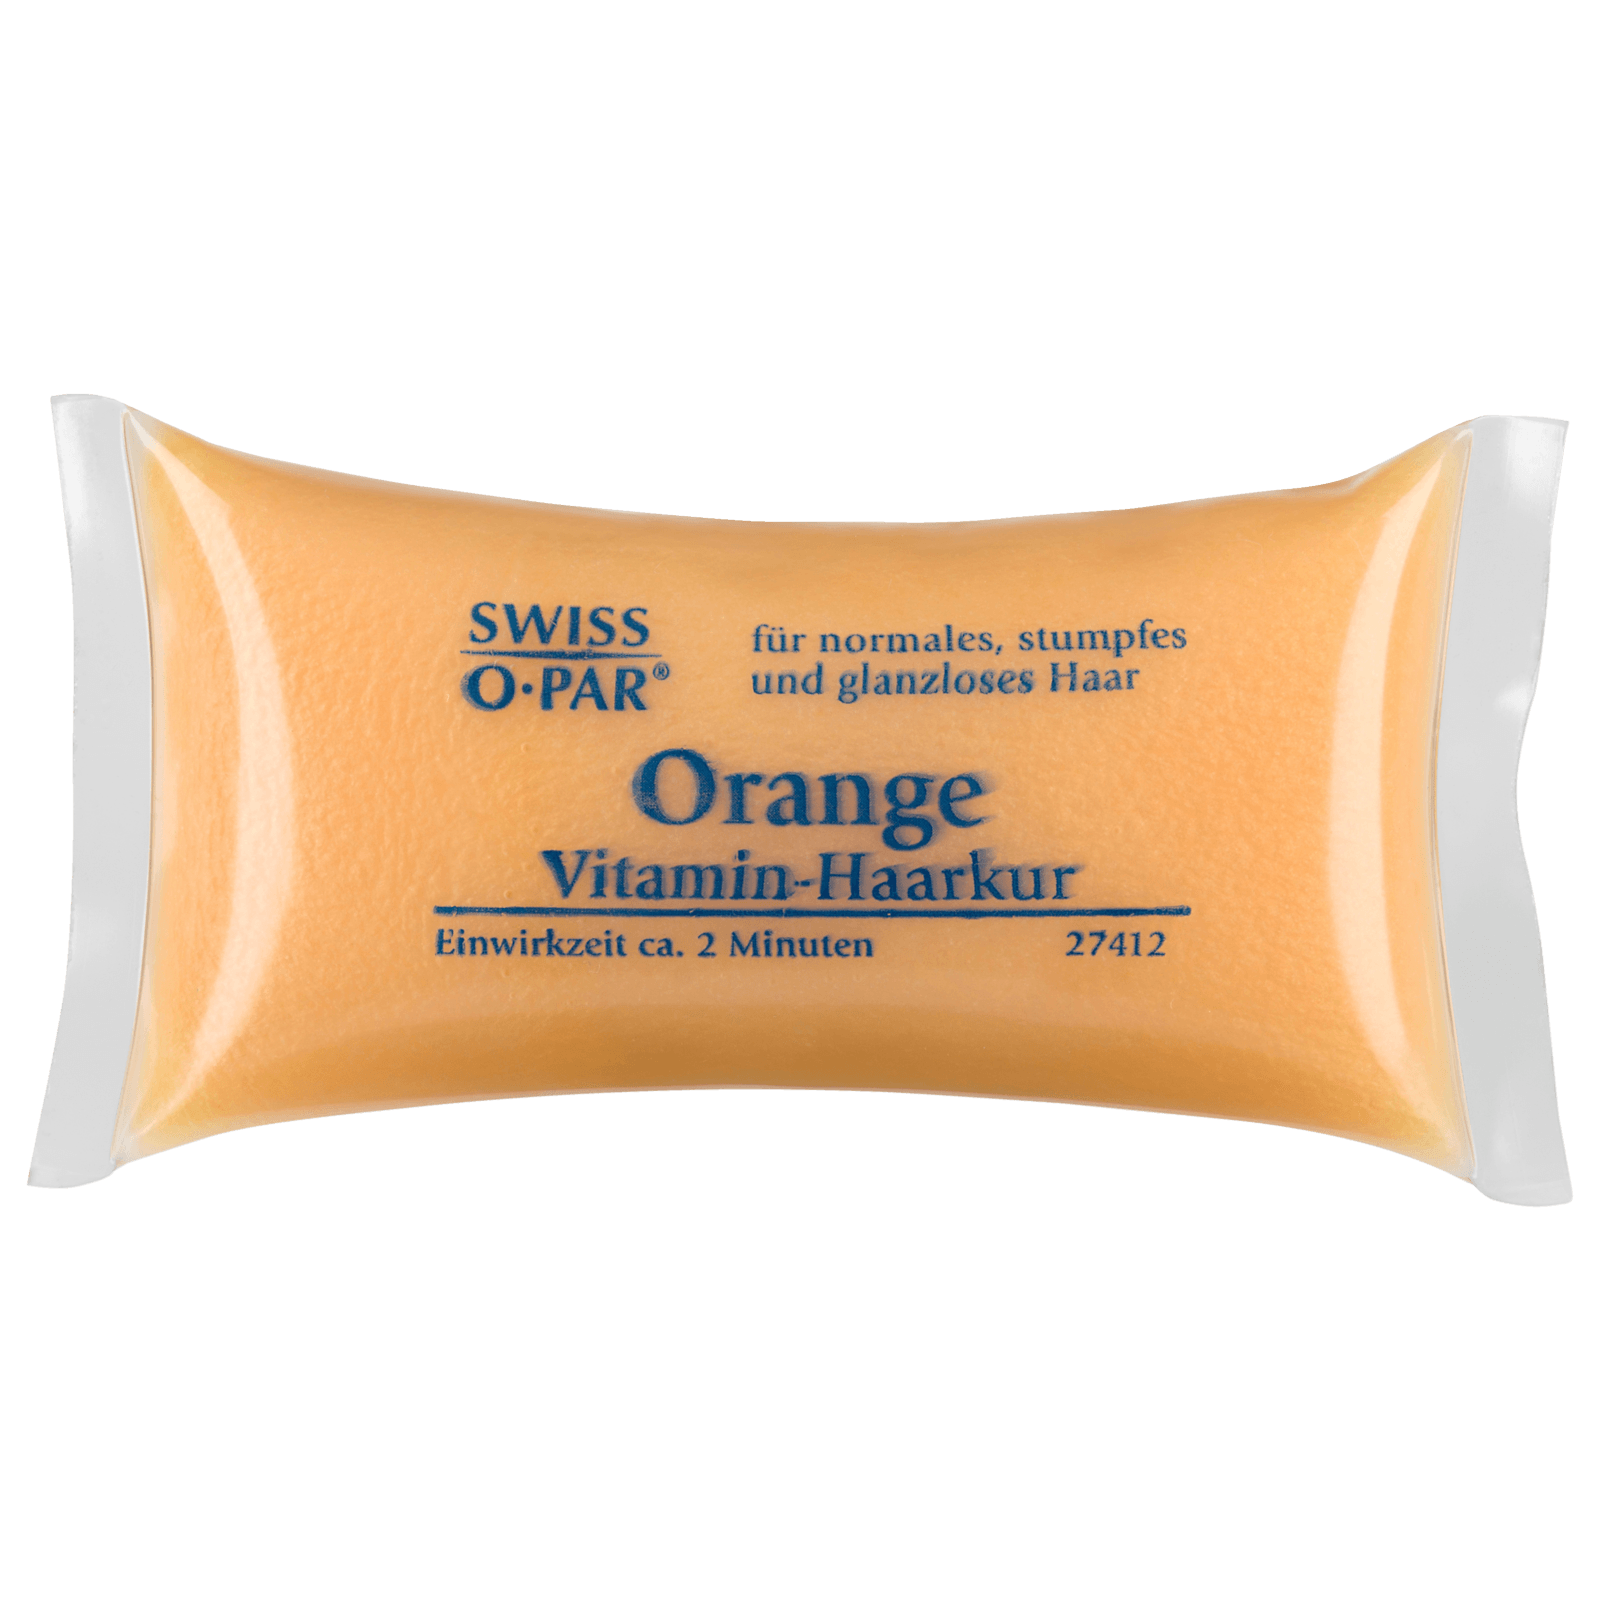 Swiss-O-Par Vitamin-Haarkur Orange 25ml